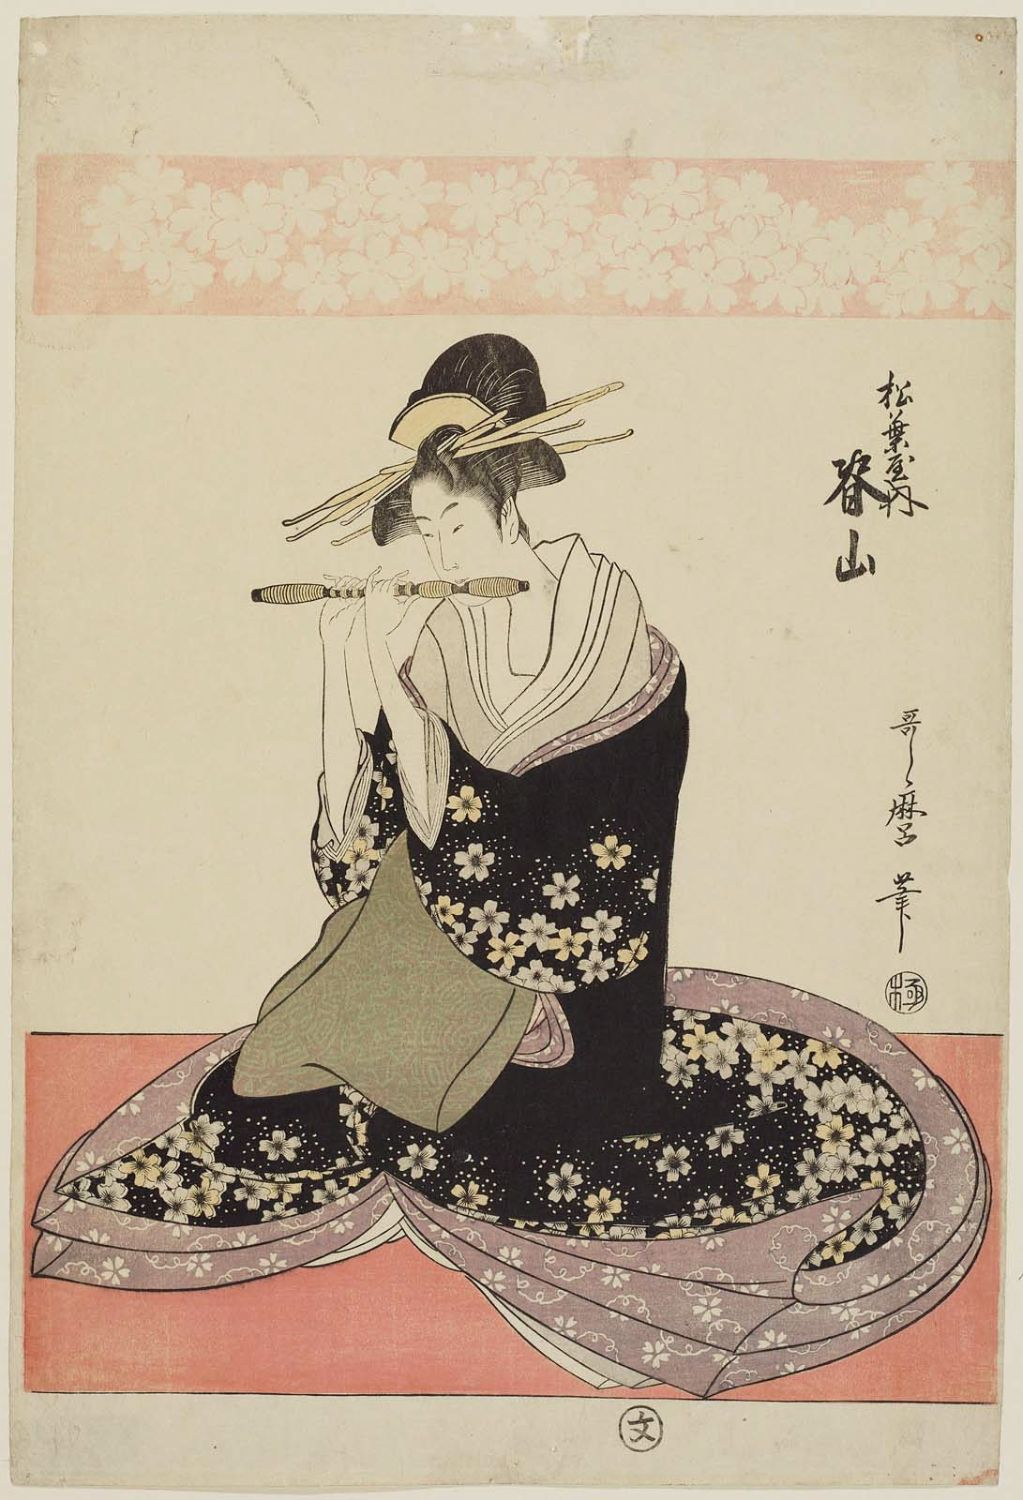 essays on kitagawa utamaro Girl powdering her neck by 'girl powdering her neck' is a contemplation of a portrait of a geisha from one of the artist kitagawa utamaro's studies of.